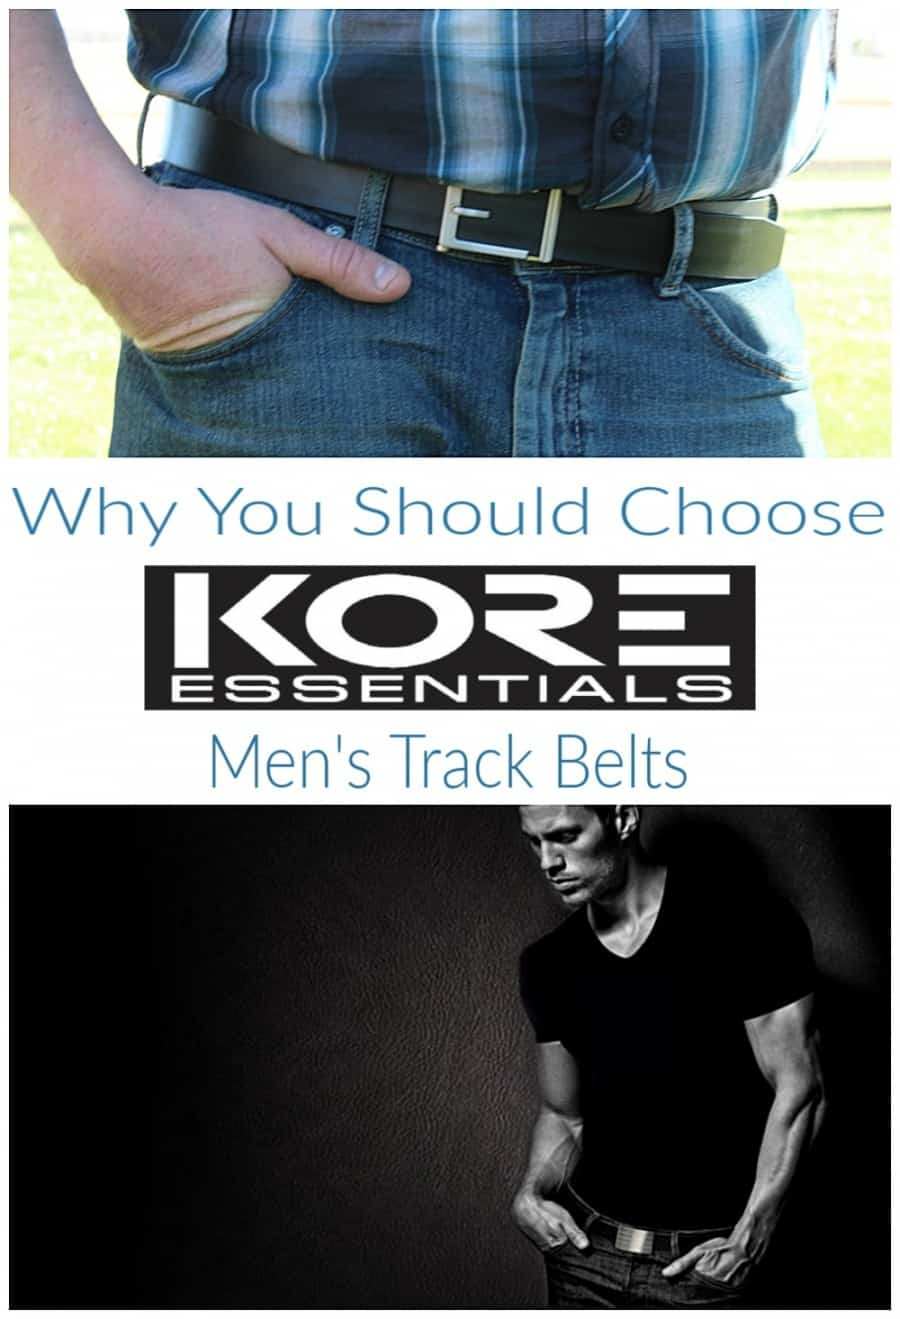 33f35761f KORE Essentials Mens Track Belts - Thrifty Nifty Mommy